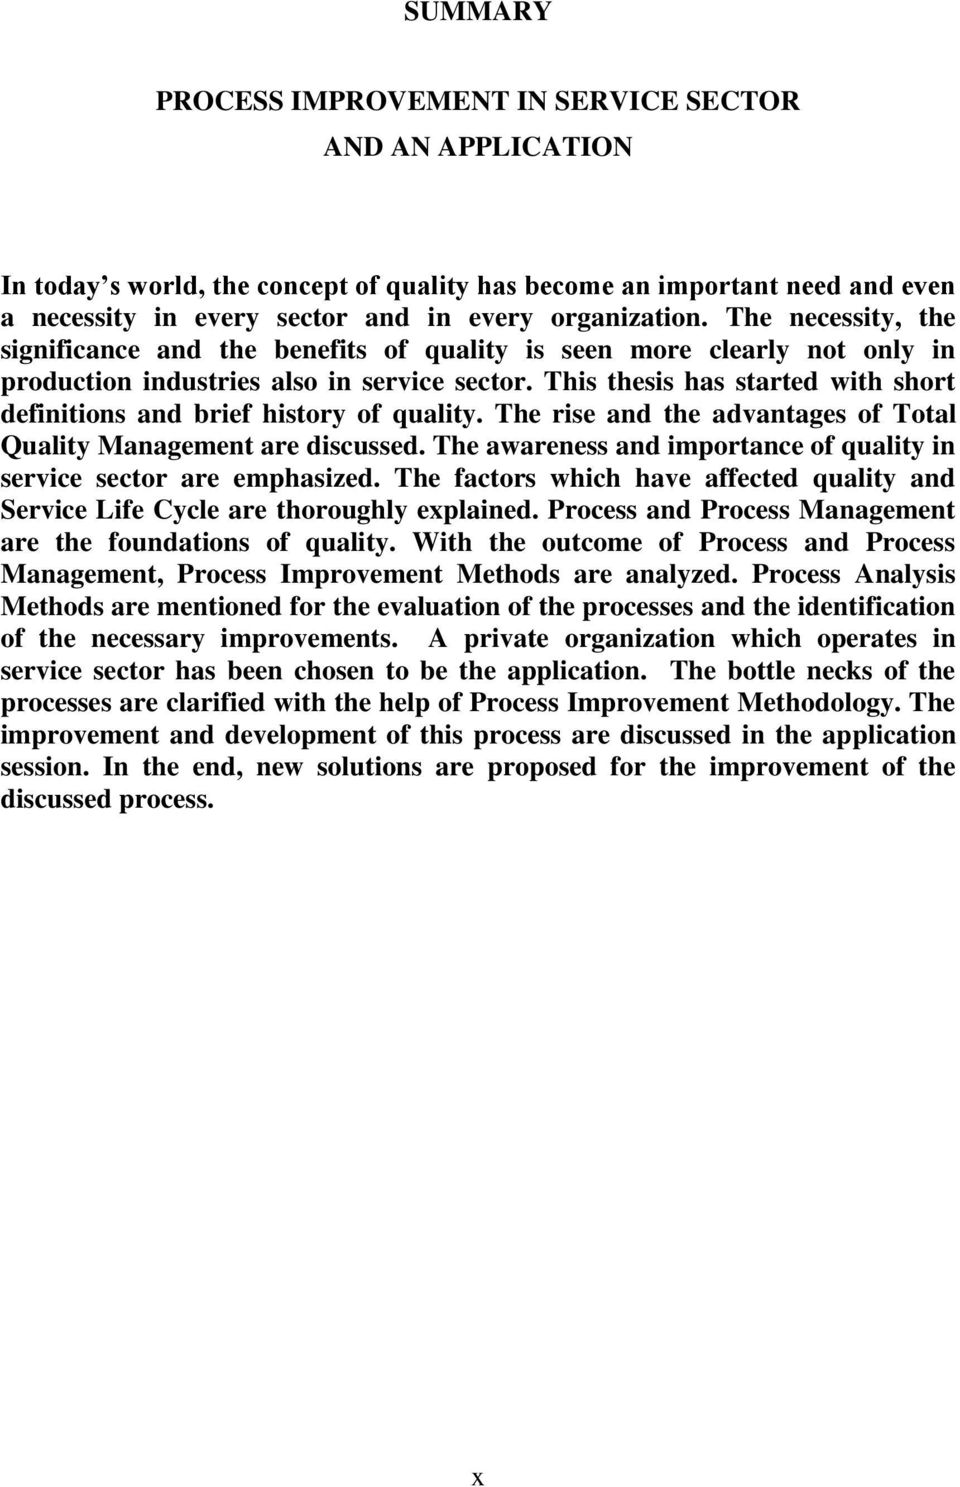 This thesis has started with short definitions and brief history of quality. The rise and the advantages of Total Quality Management are discussed.